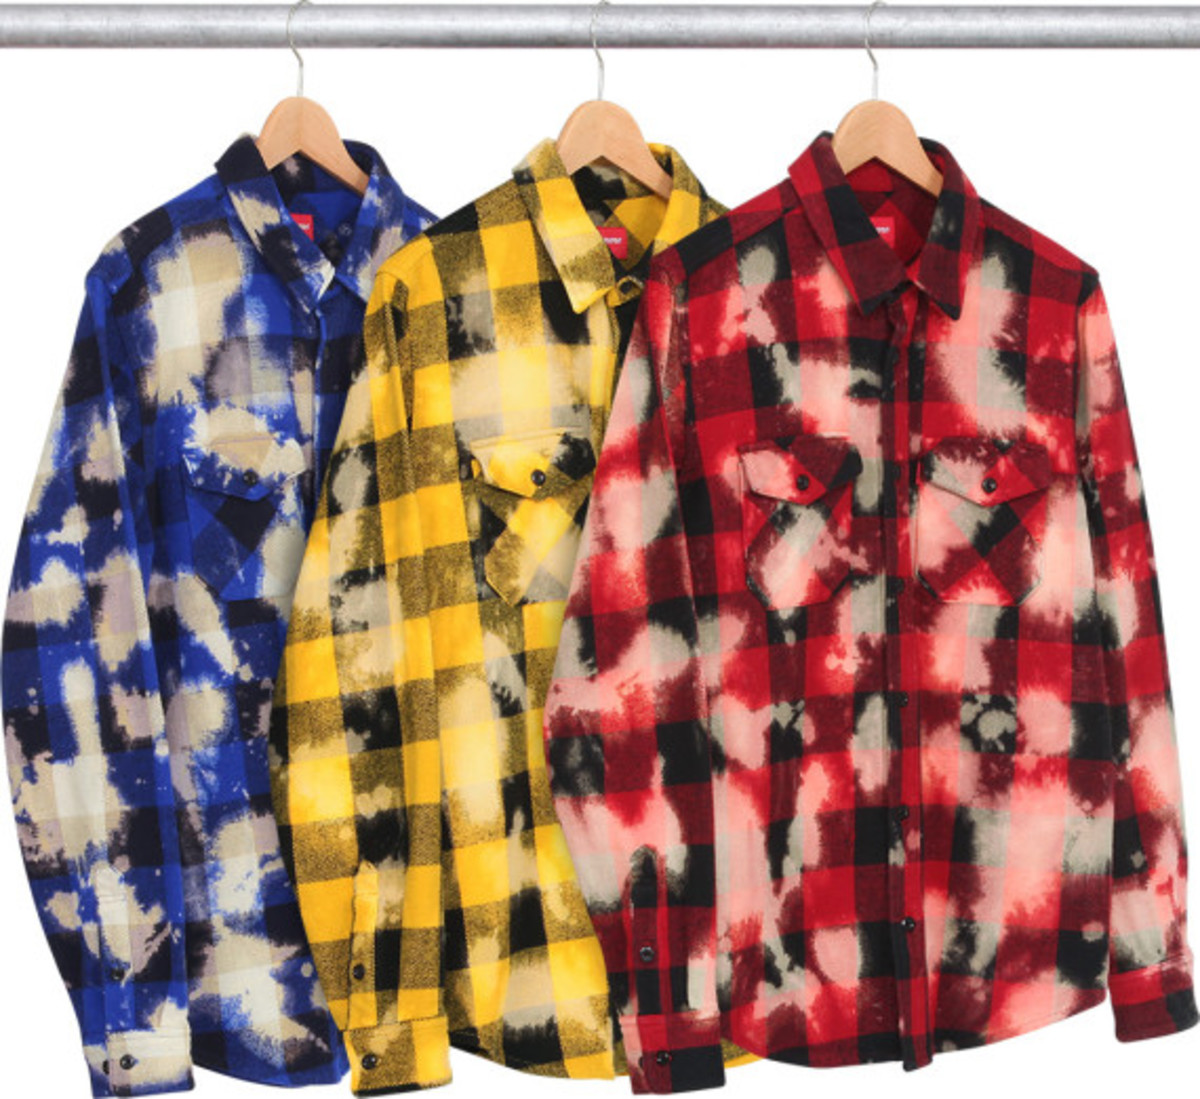 supreme-fall-winter-2013-apparel-collection-040